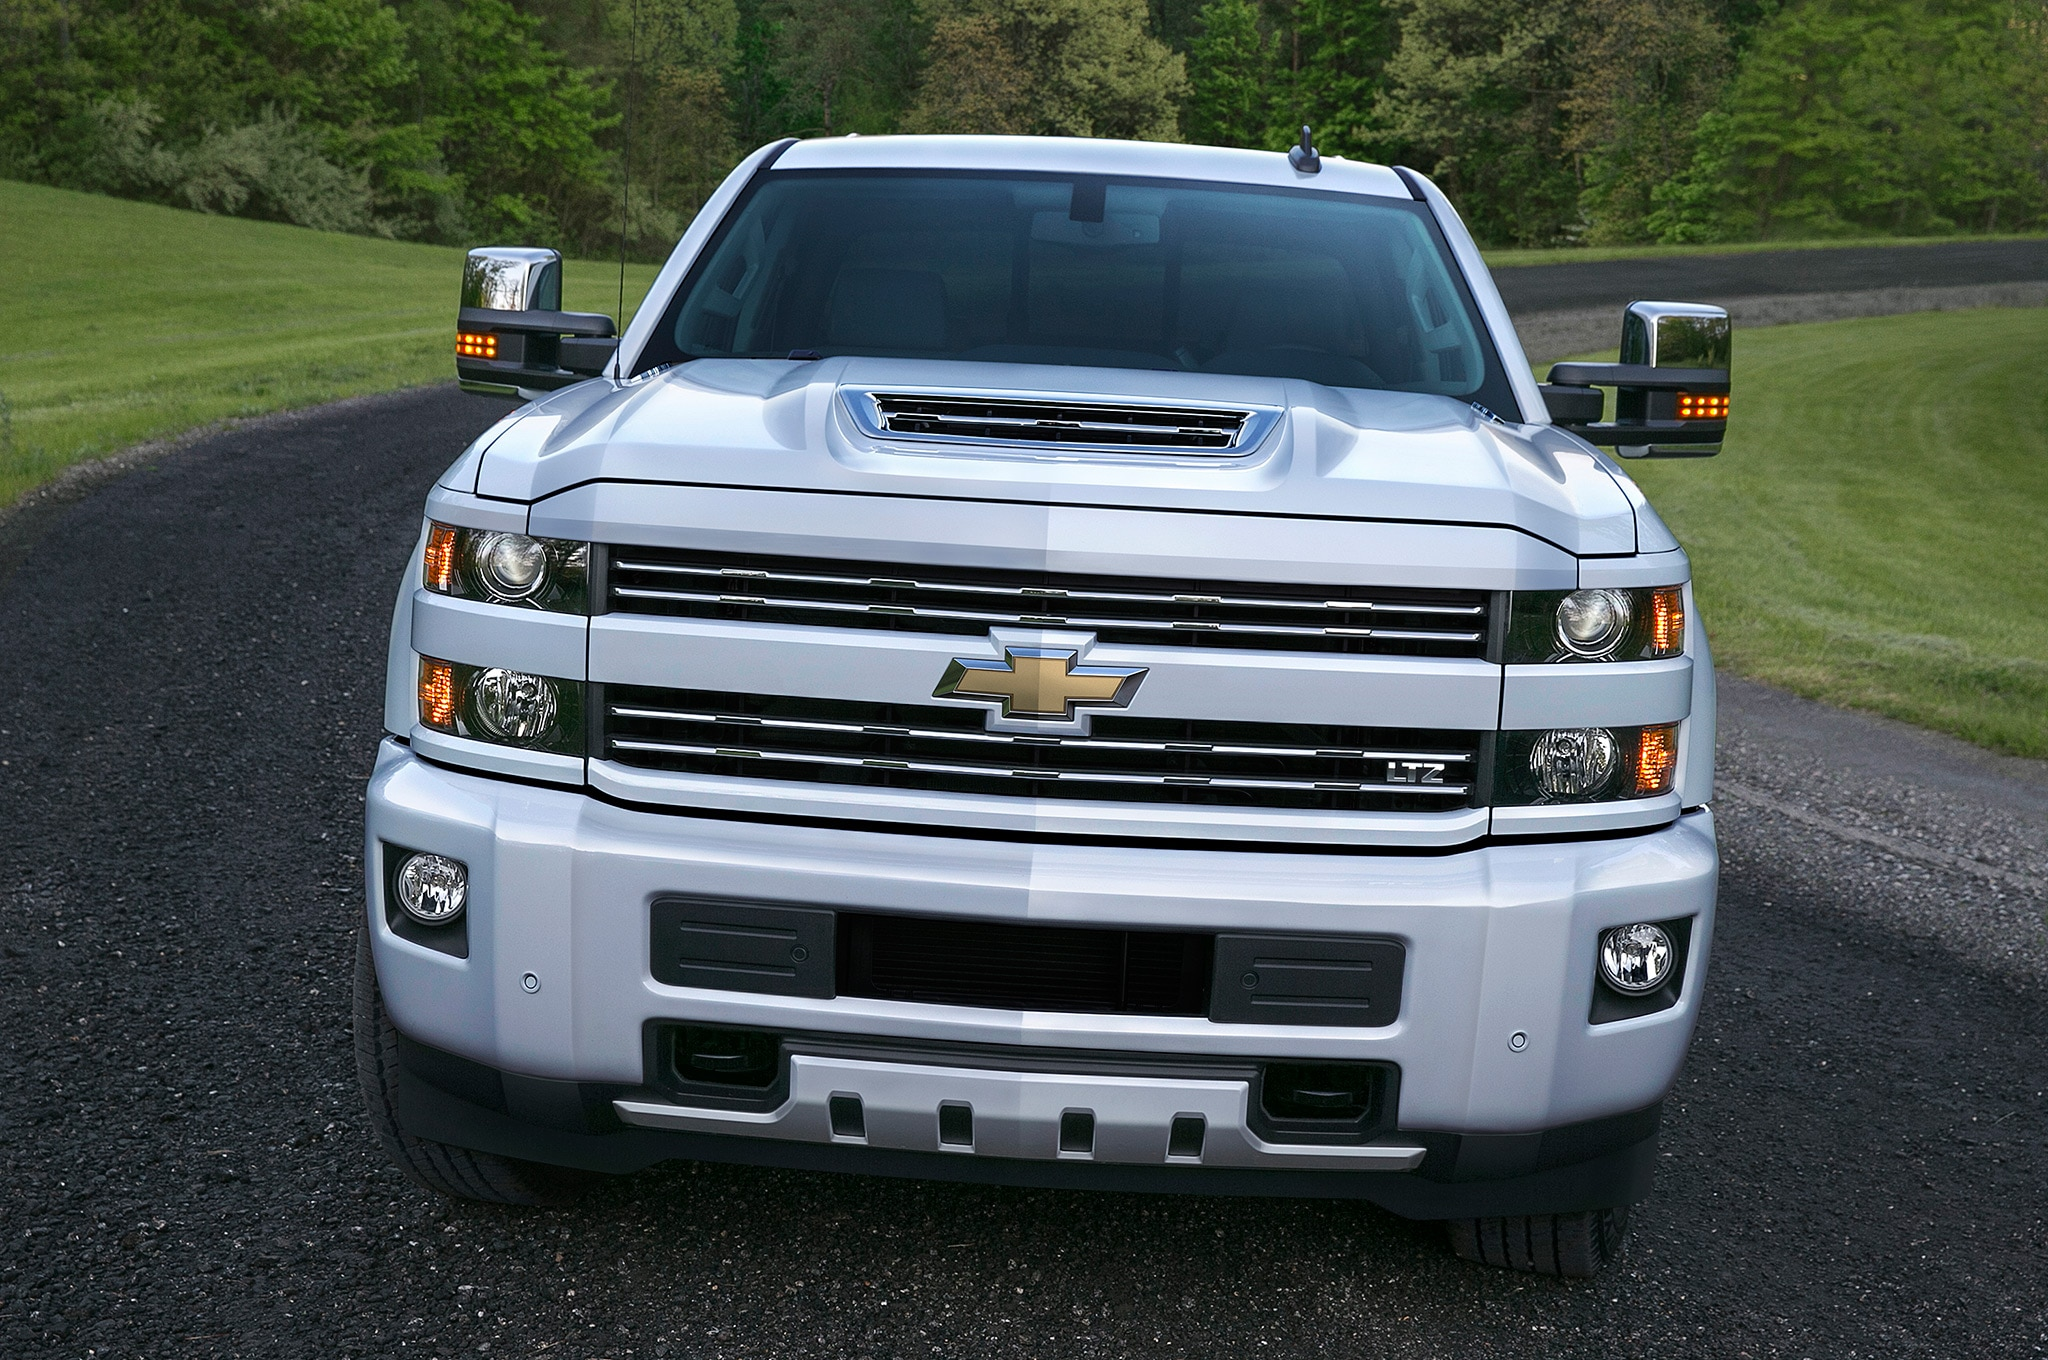 2017 Chevrolet Silverado 2500HD front end 2017 chevrolet silverado hd adds functional ram air hood scoop  at bakdesigns.co